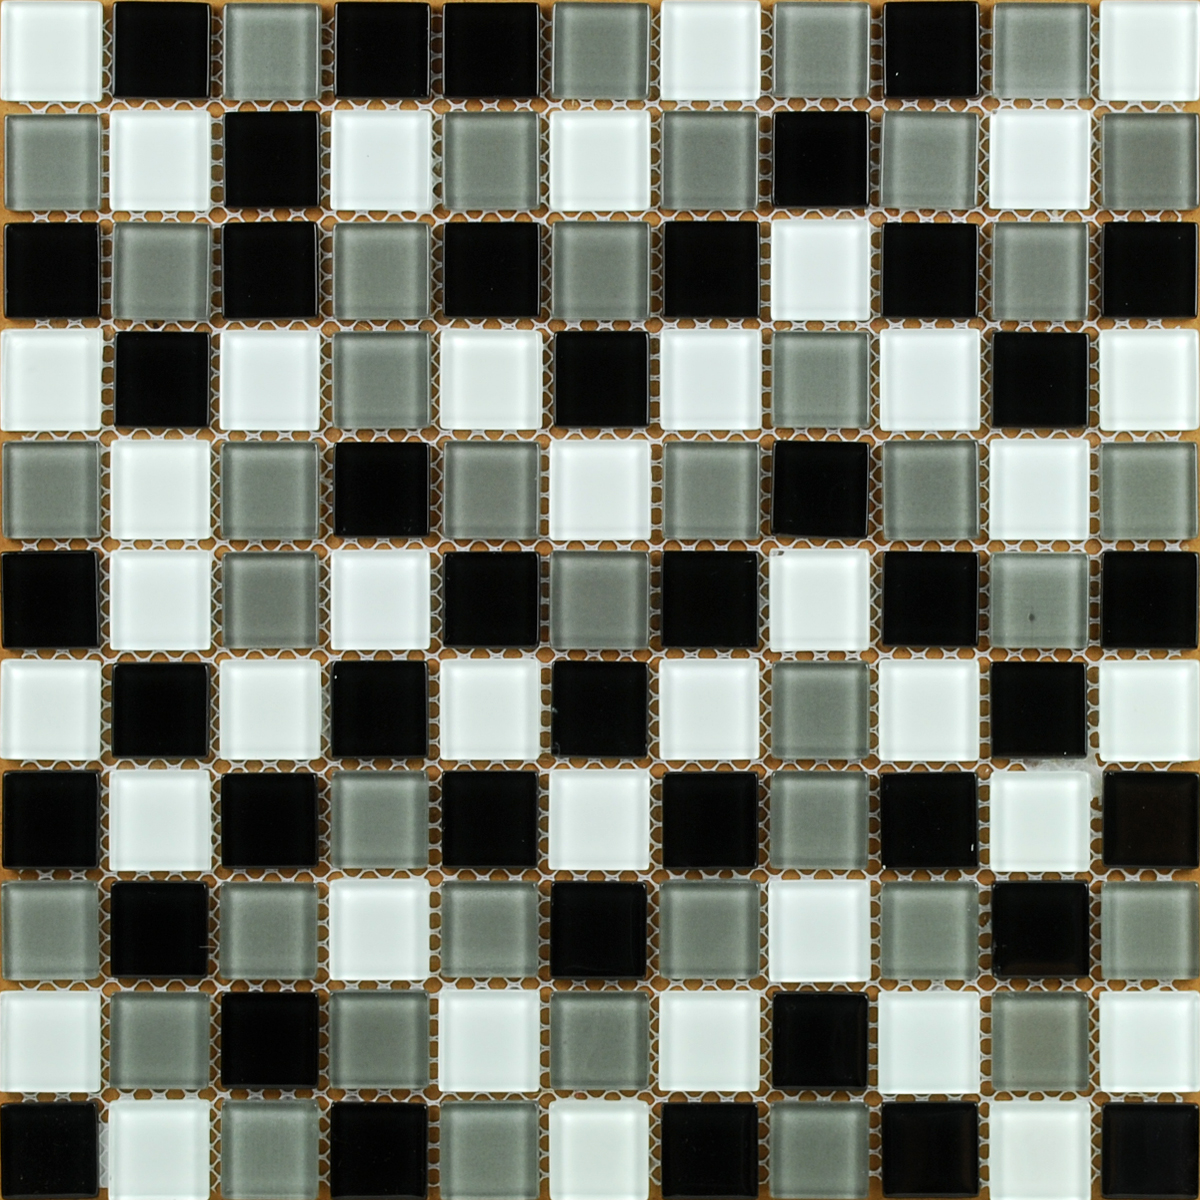 Wholesale vitreous mosaic tile crystal glass backsplash kitchen penny - Front Of Crystal Glass Tile Vitreous Mosaic Wall Tiles Kl026